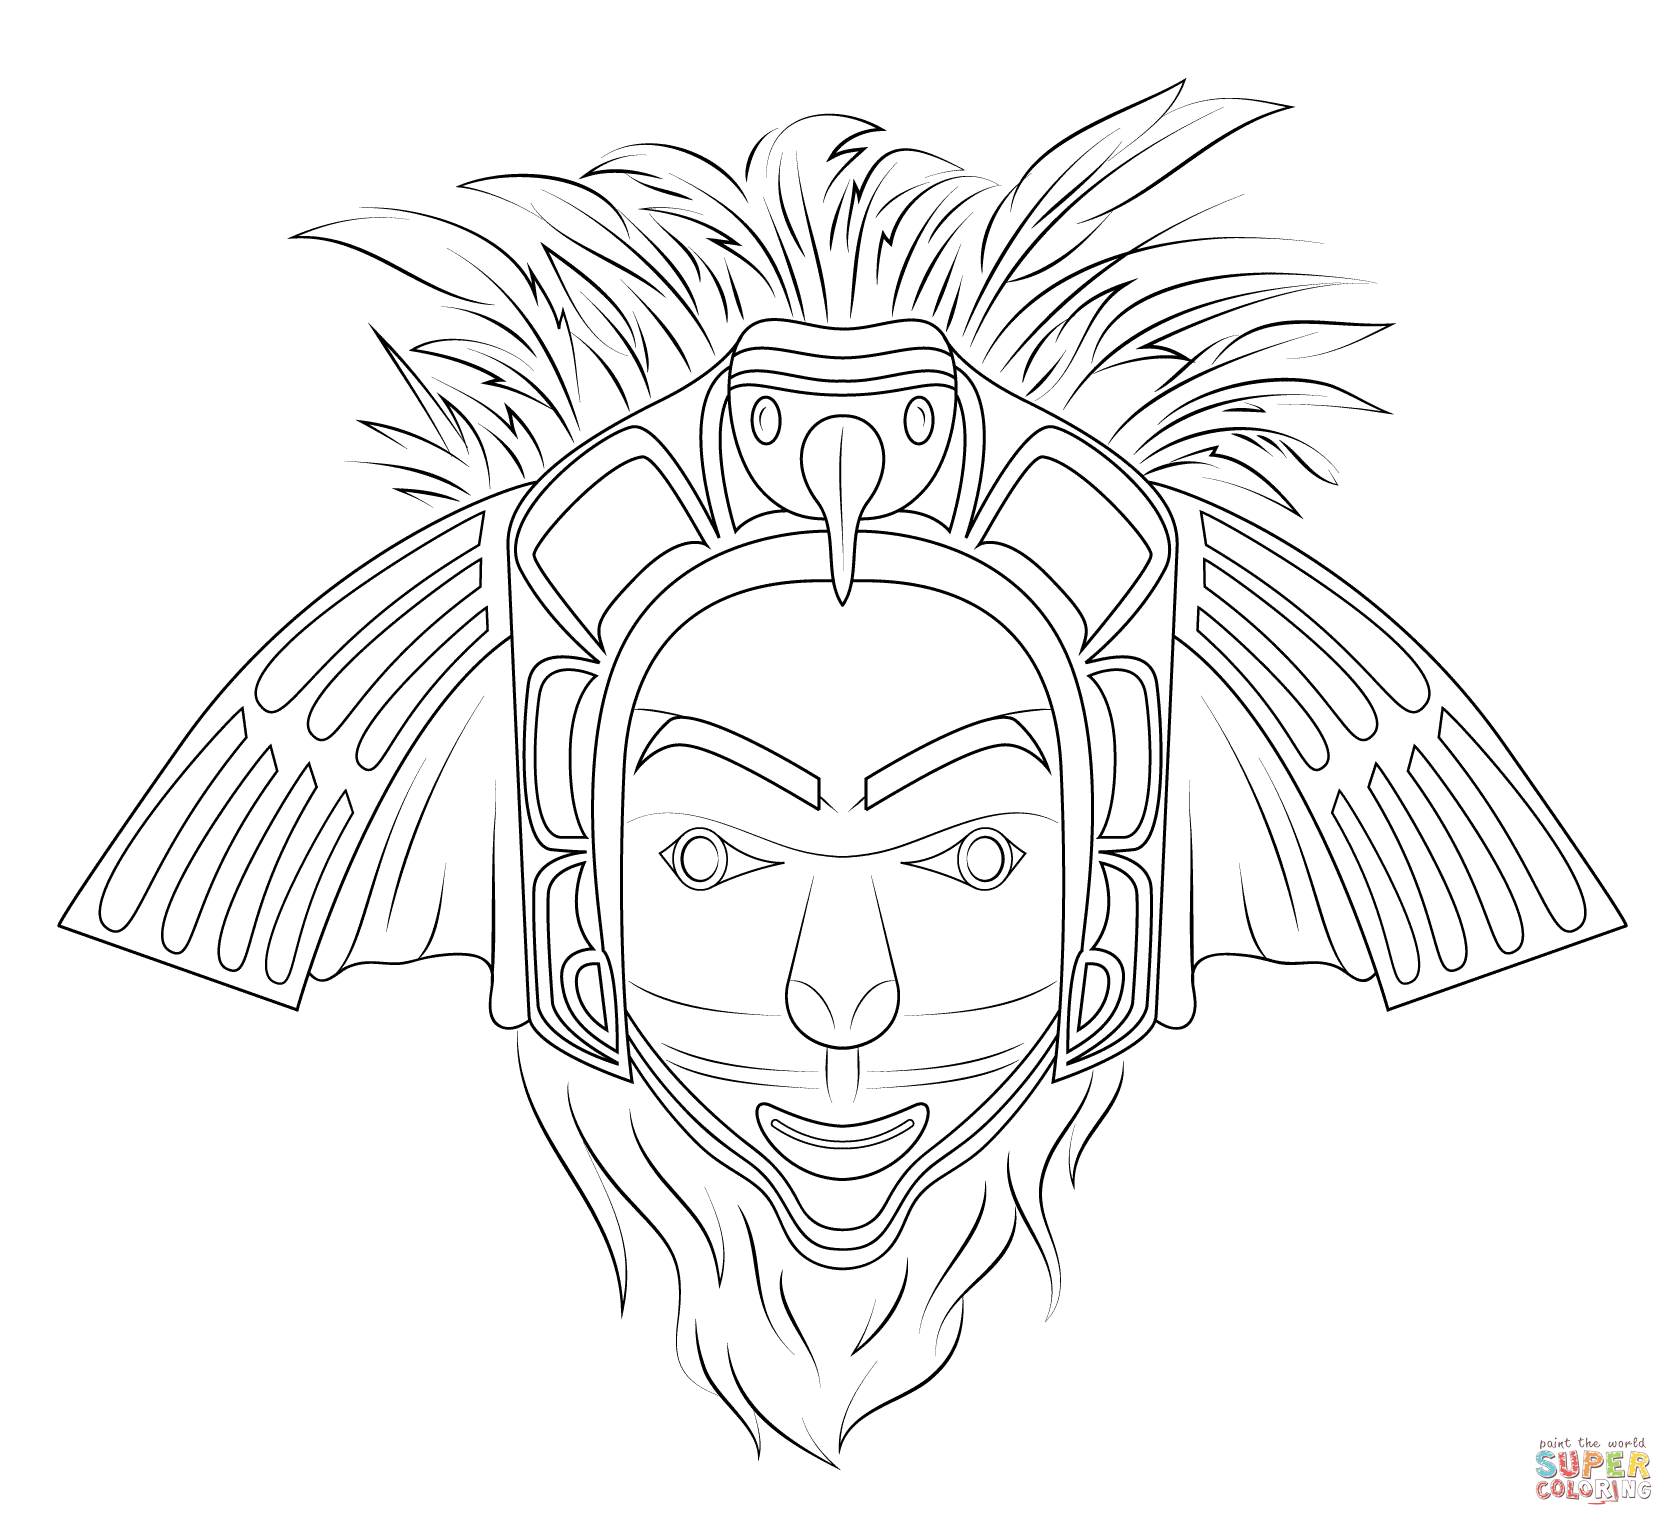 Eagle Totem Pole Drawing At Getdrawings